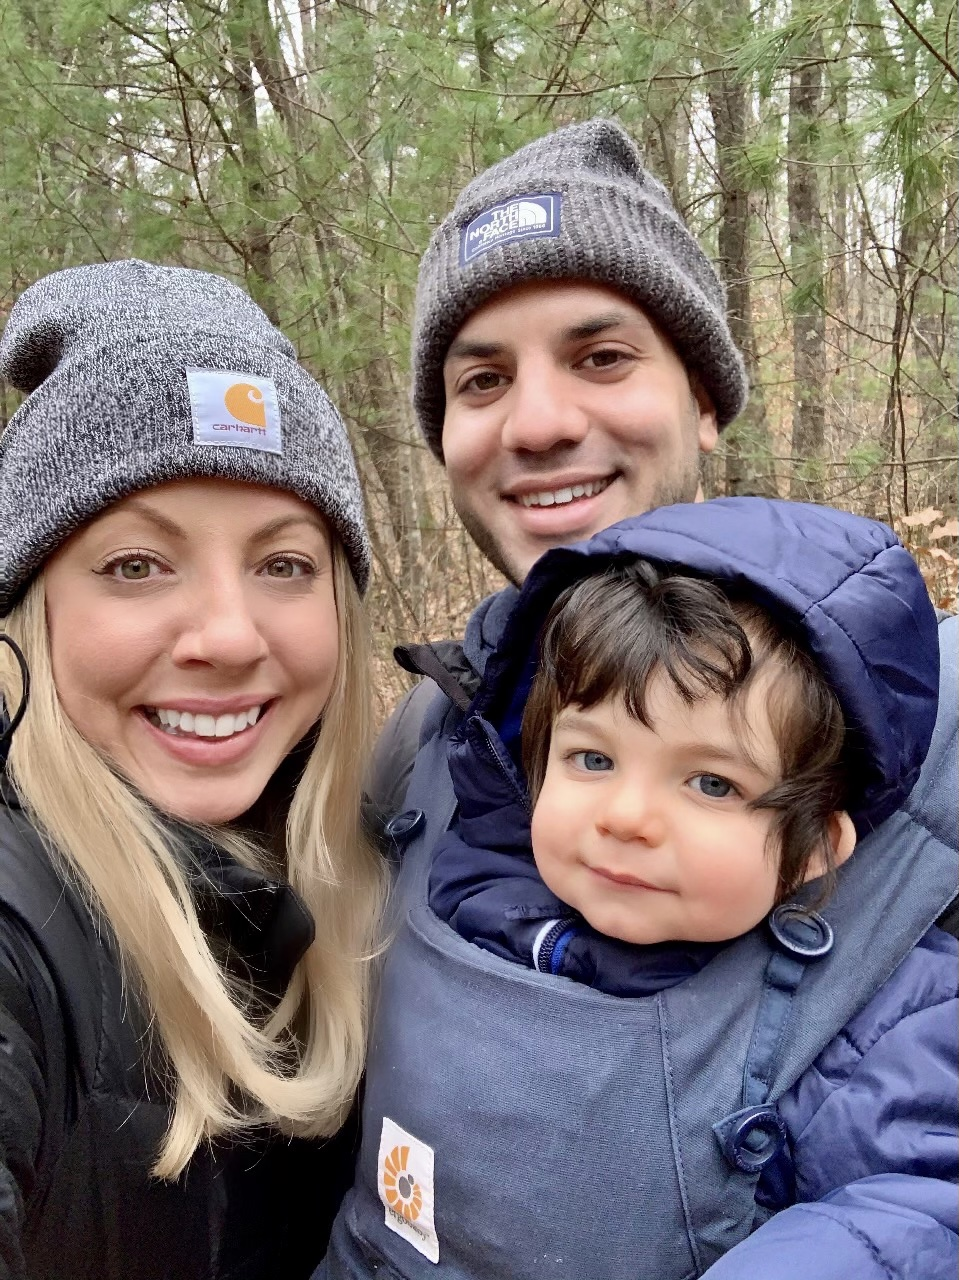 James-and-fam-in-NH-woods-1623784149